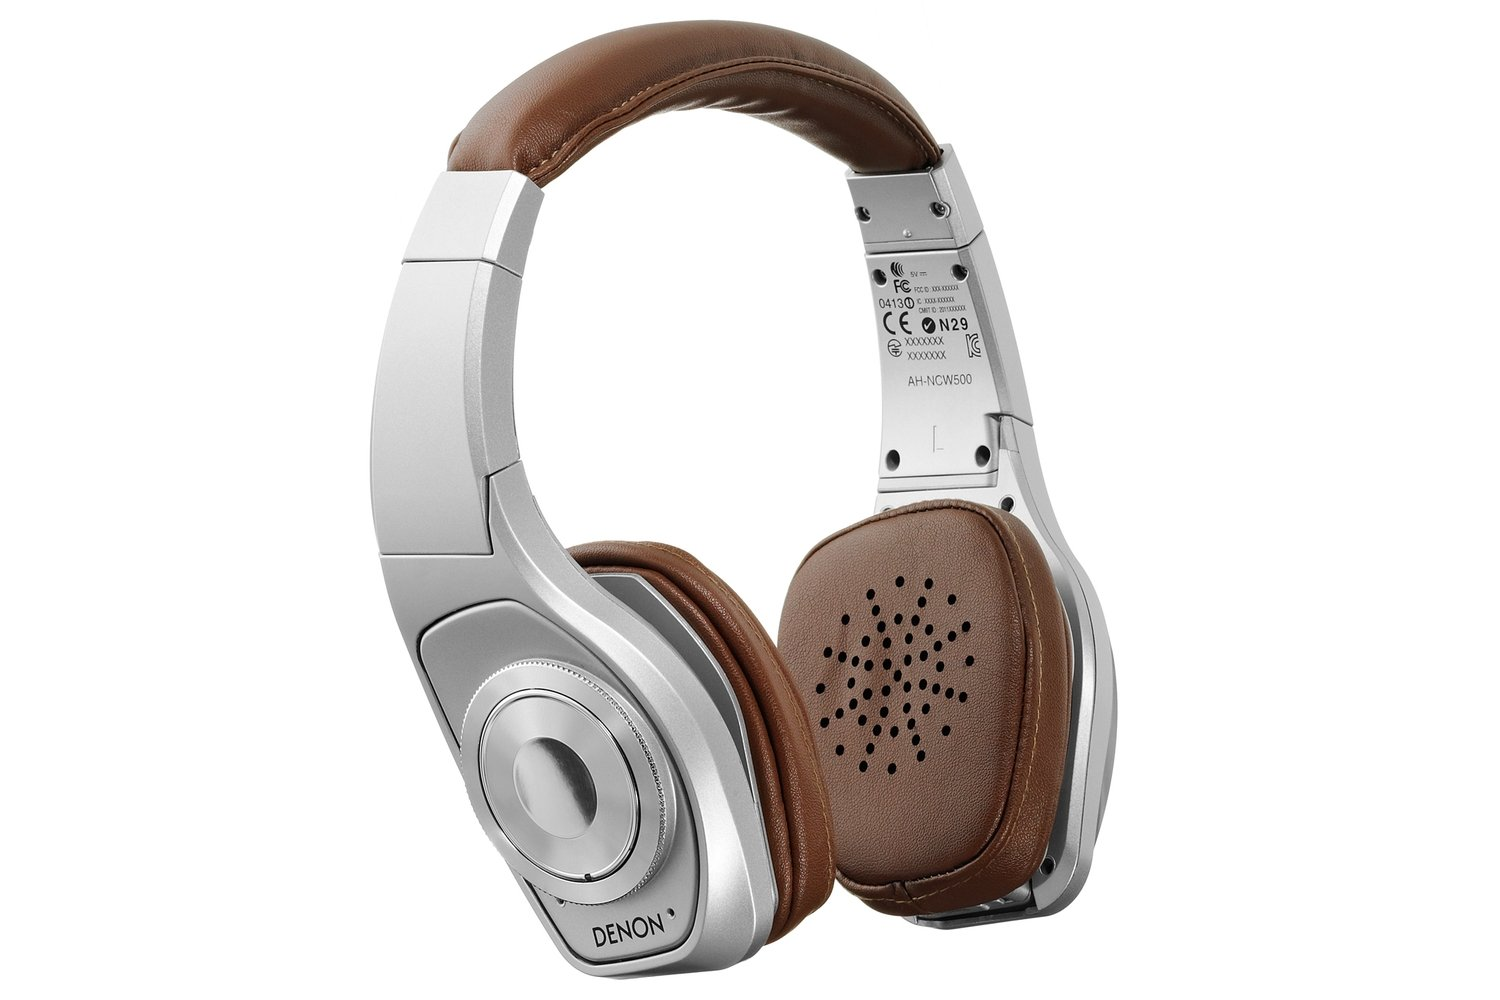 Denon AH-NCW500 Headphone Review